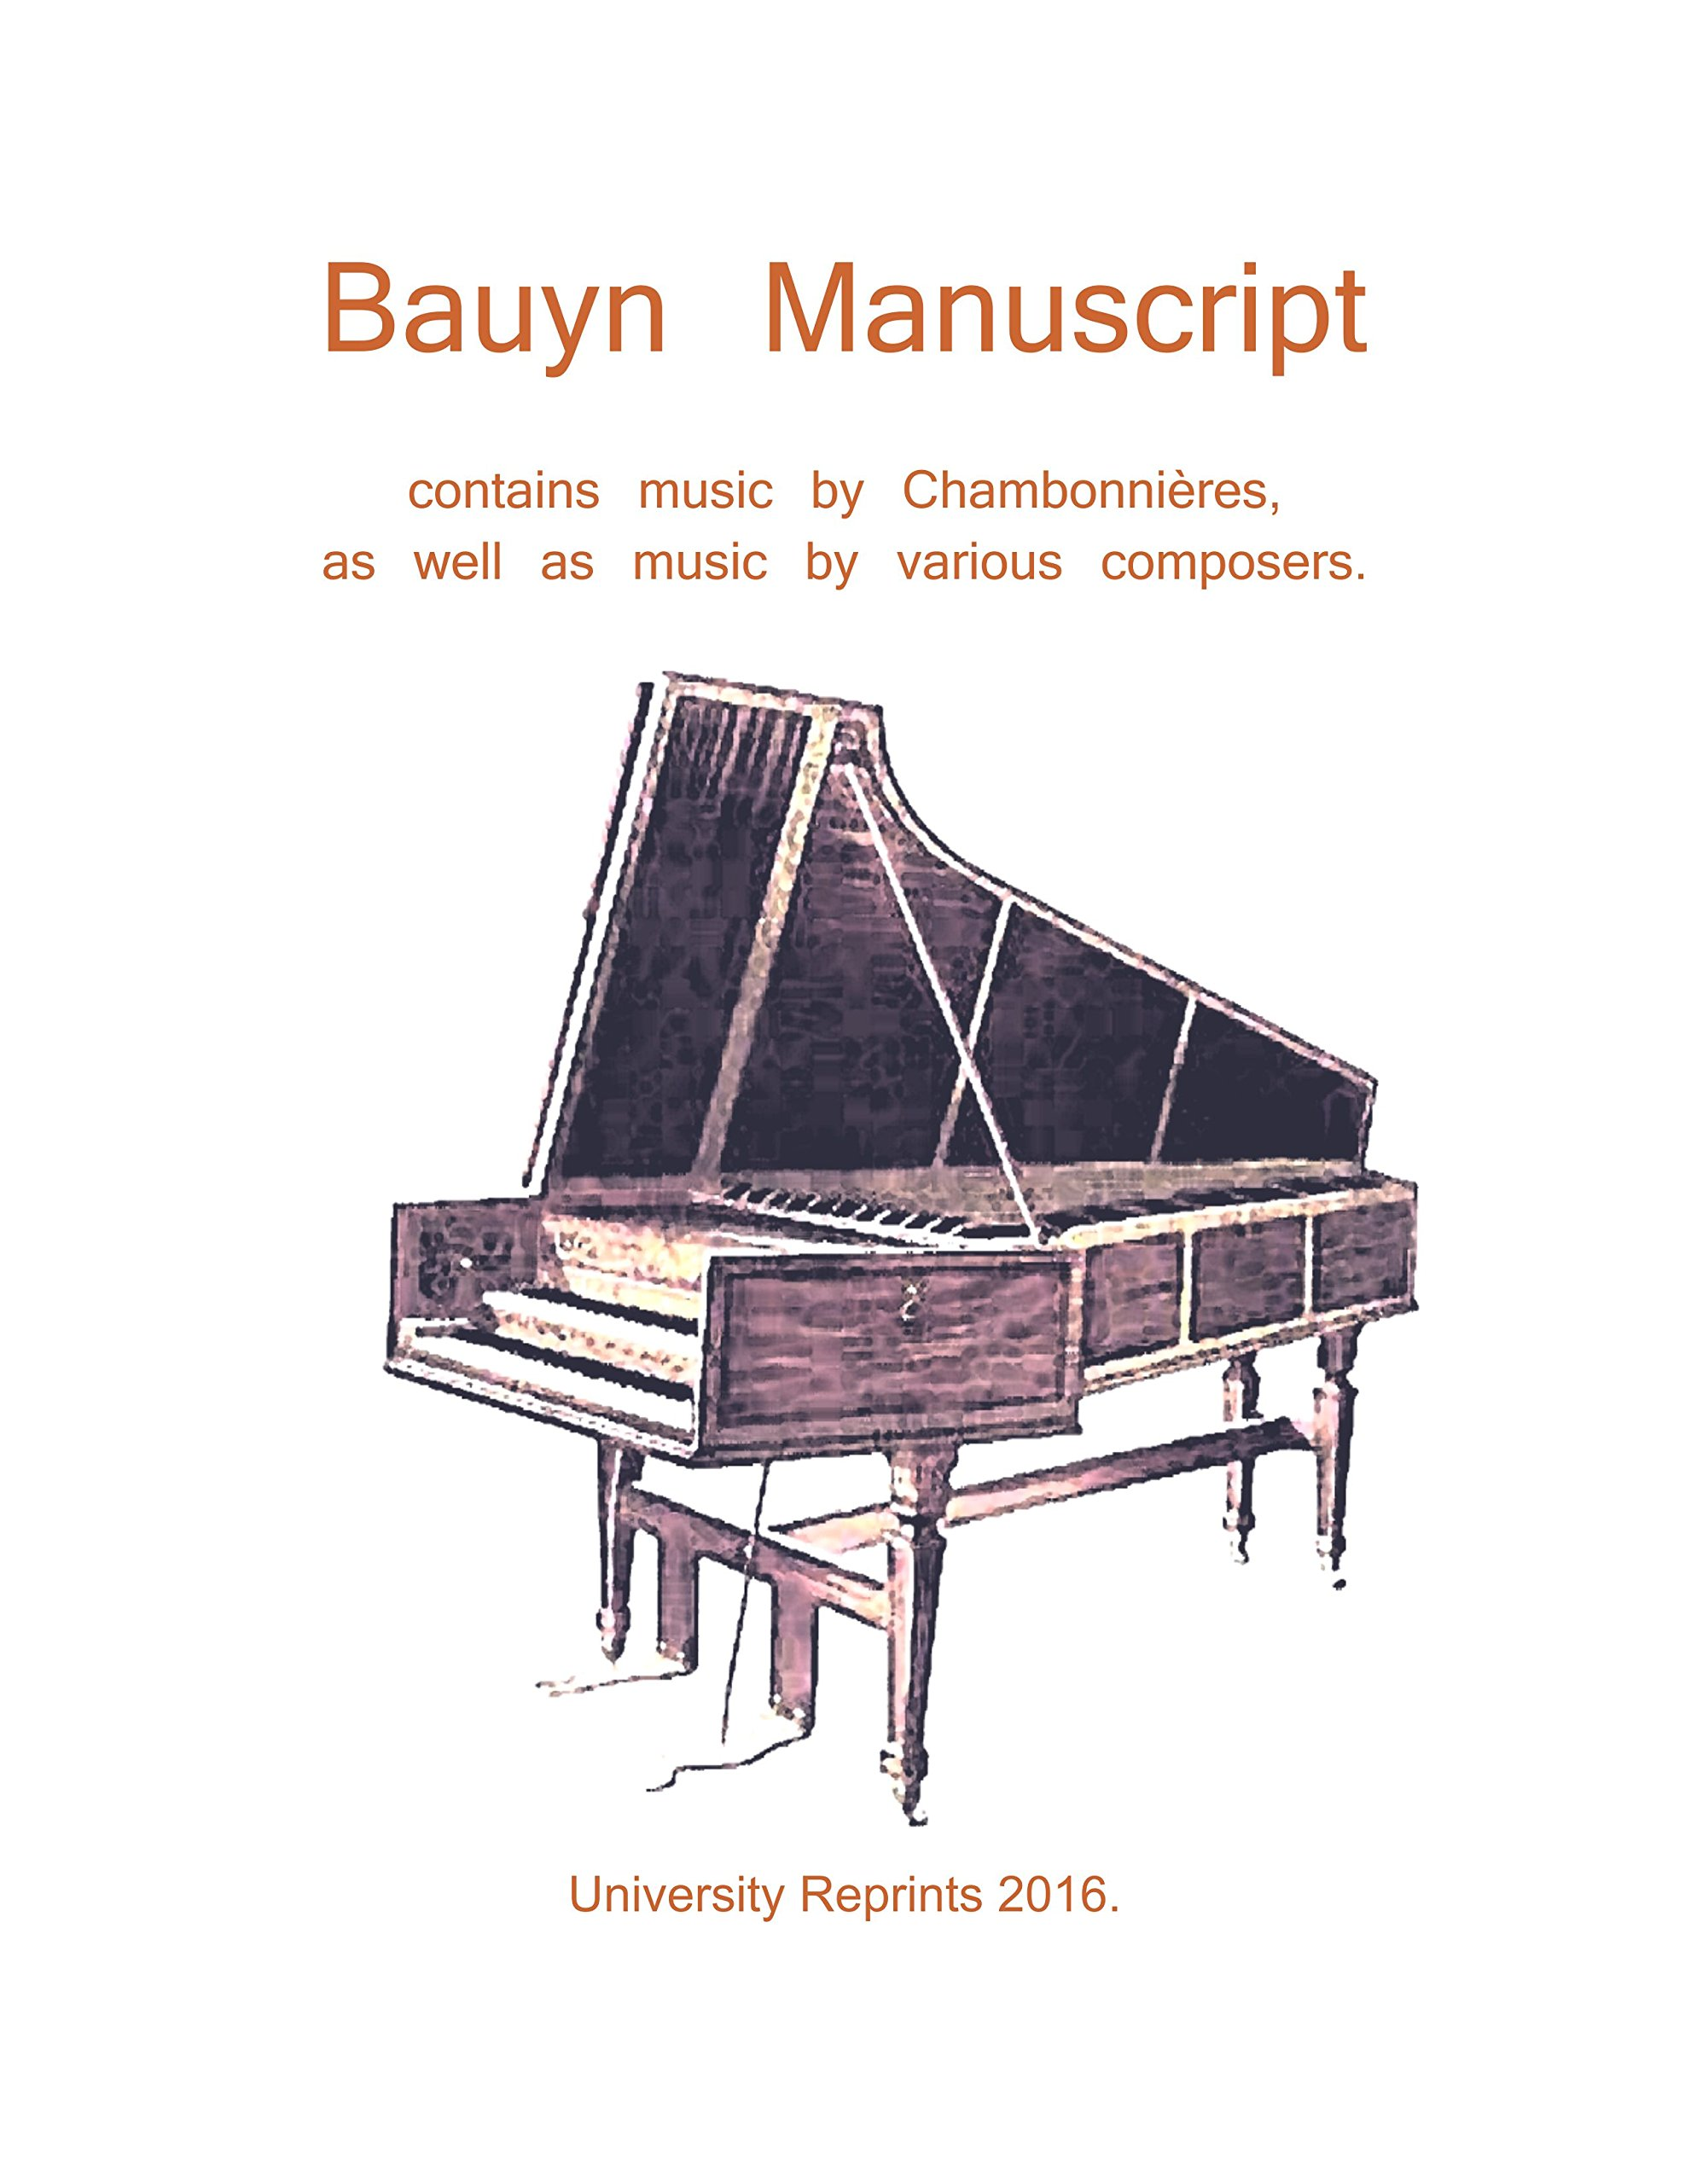 Download Bauyn Manuscript Volume One for Harpsichord; contains music by Chambonnieres, as well as music by various composers. [Student Loose Leaf Facsimile Edition. Beautifully Re-Imaged from Original] PDF